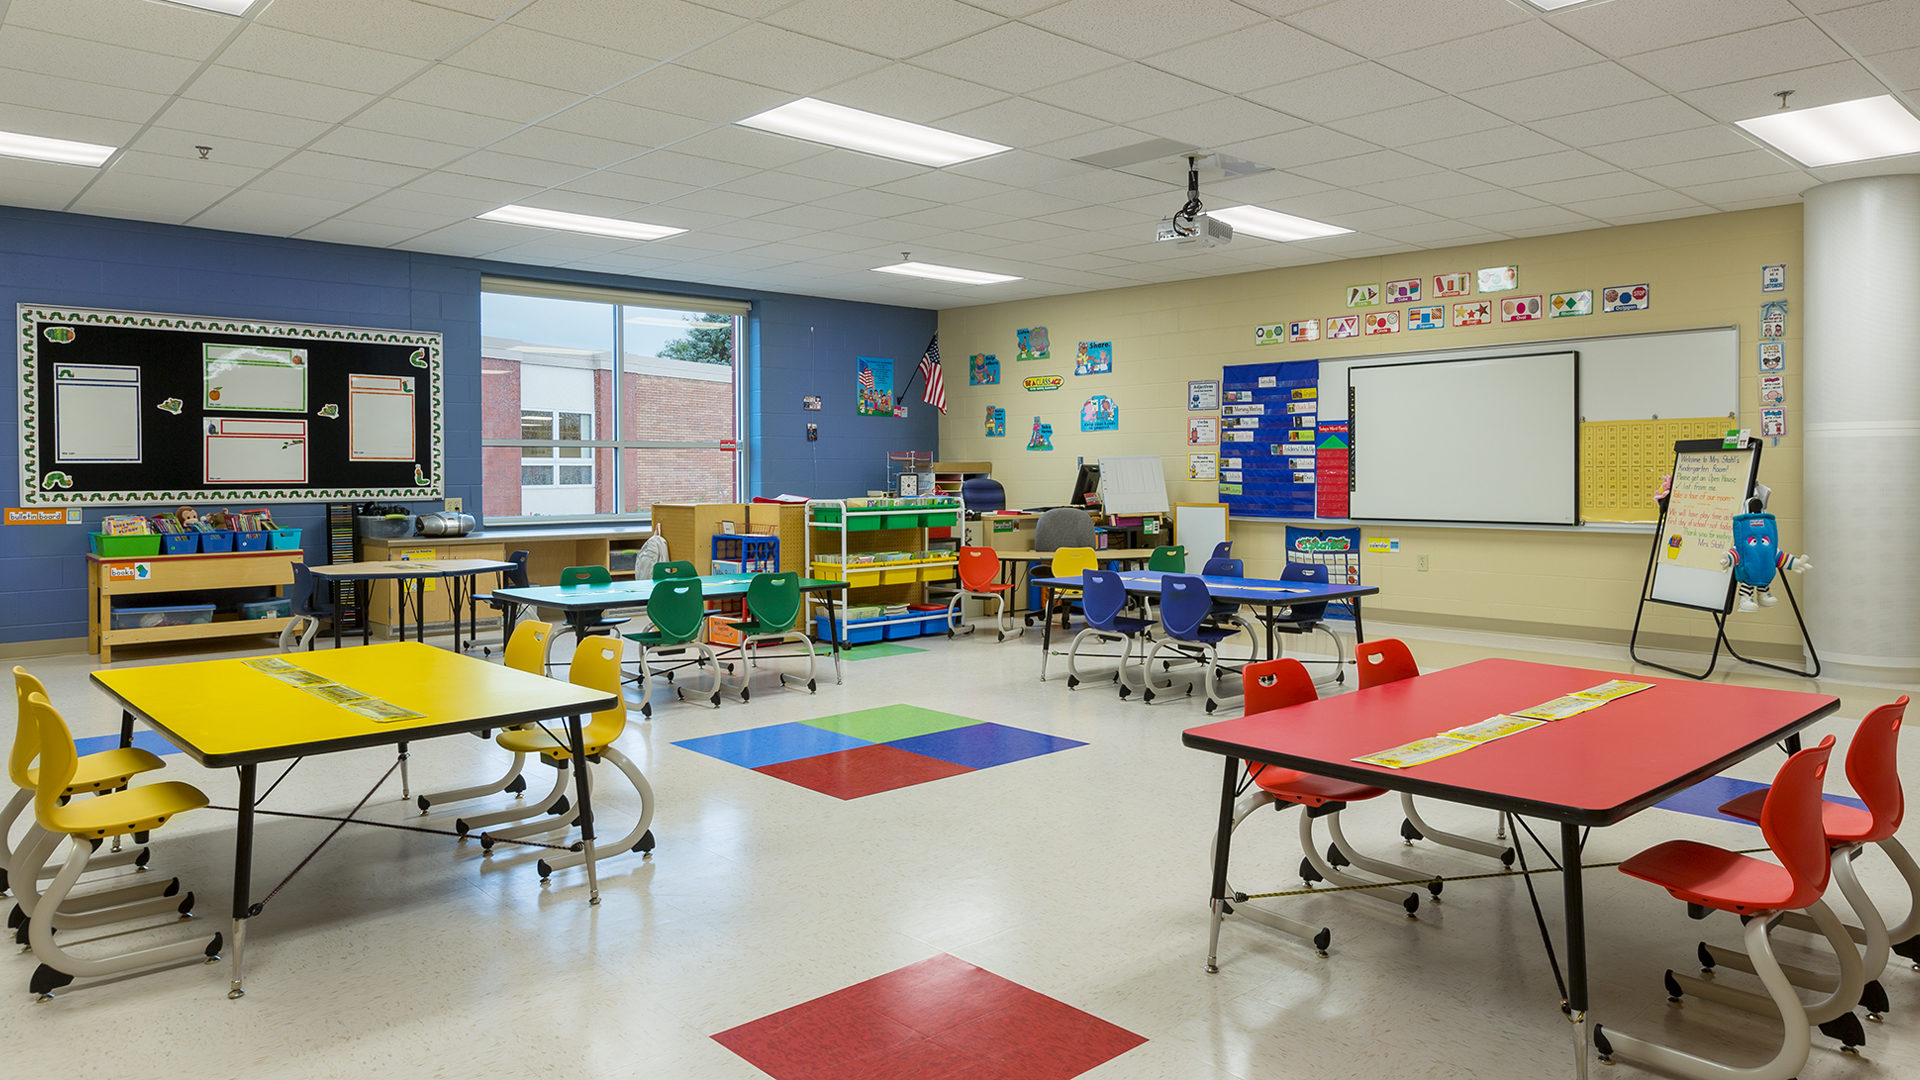 Clear Lake Elementary School Interior Primary Colored Class Room